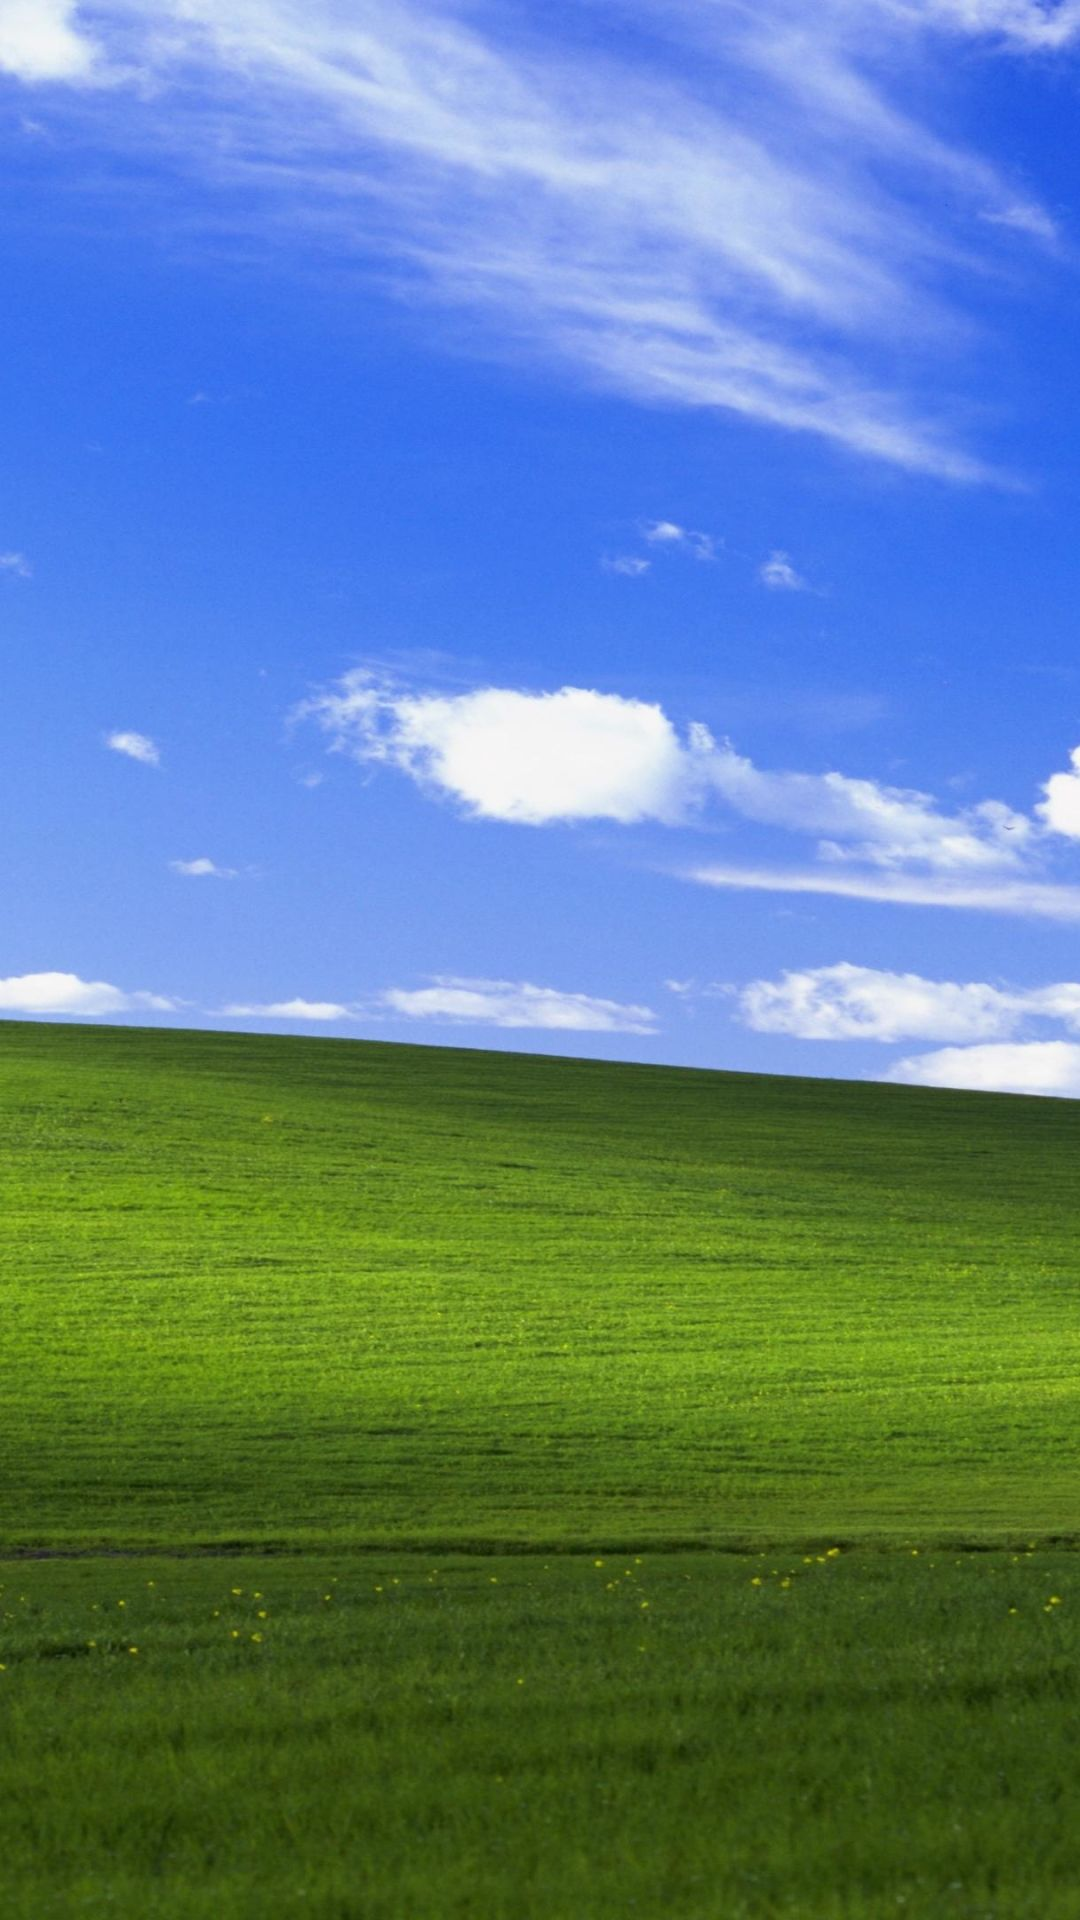 Dank Windows Xp Background Picture In 2020 Microsoft Wallpaper Background Pictures Android Wallpaper